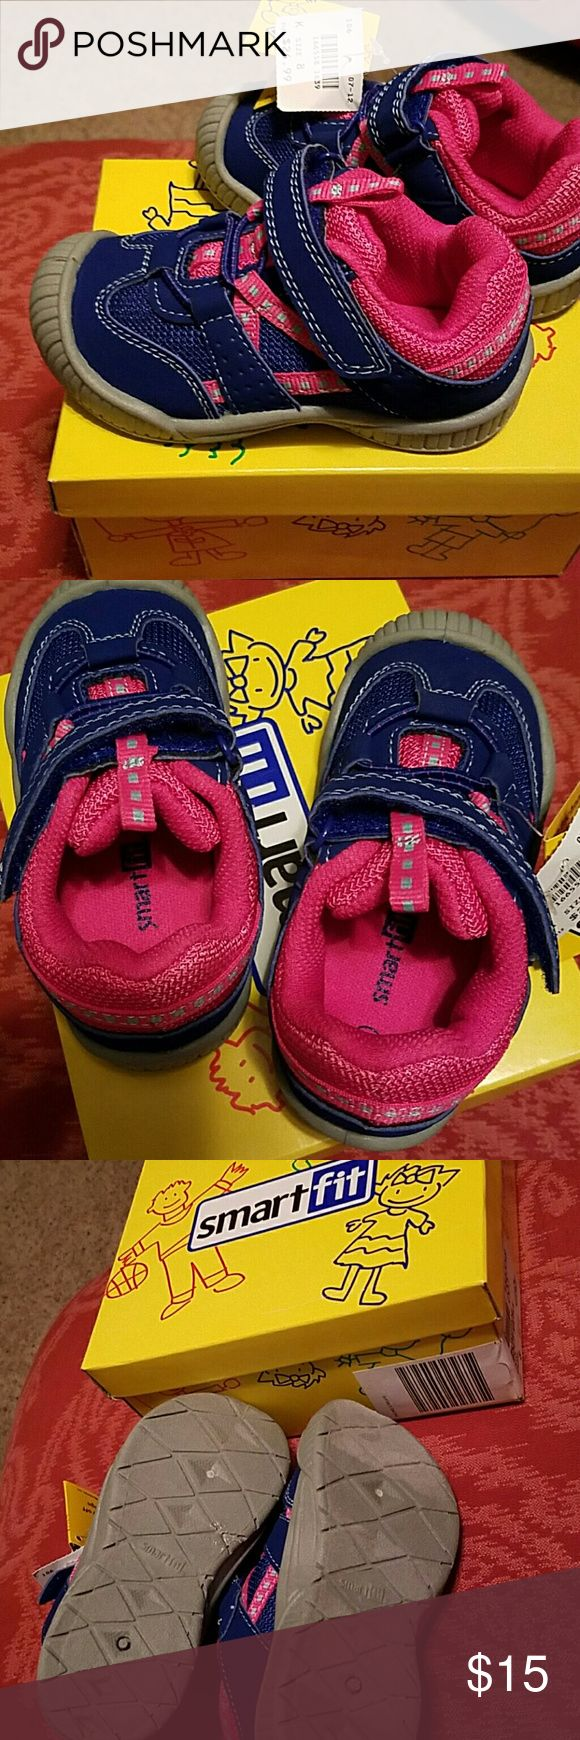 Smartfit Girls Tennis Shoes Size 8.  Brand new with tag and in box. Smartfit Shoes Sneakers